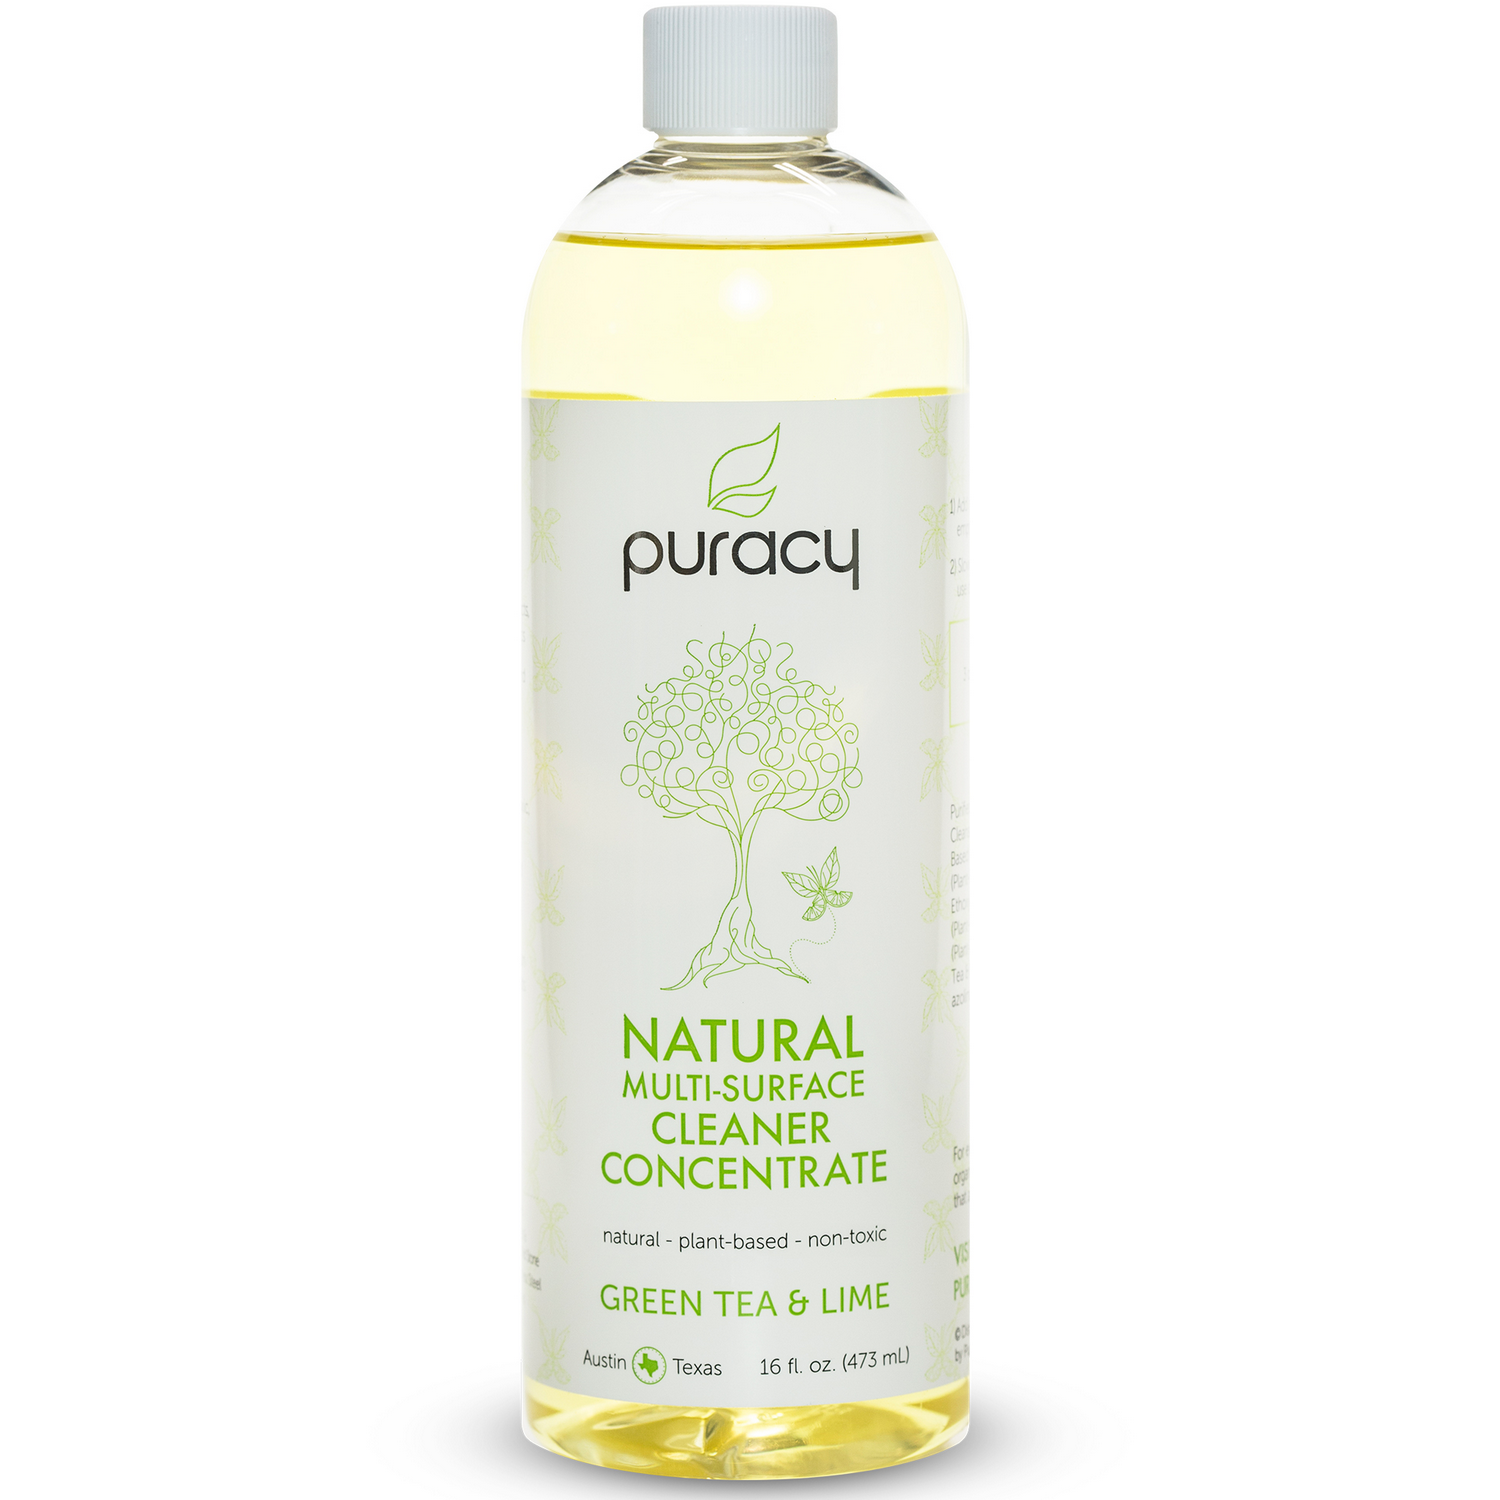 Puracy Natural Multi-Surface Cleaner Concentrate - Green Tea & Lime